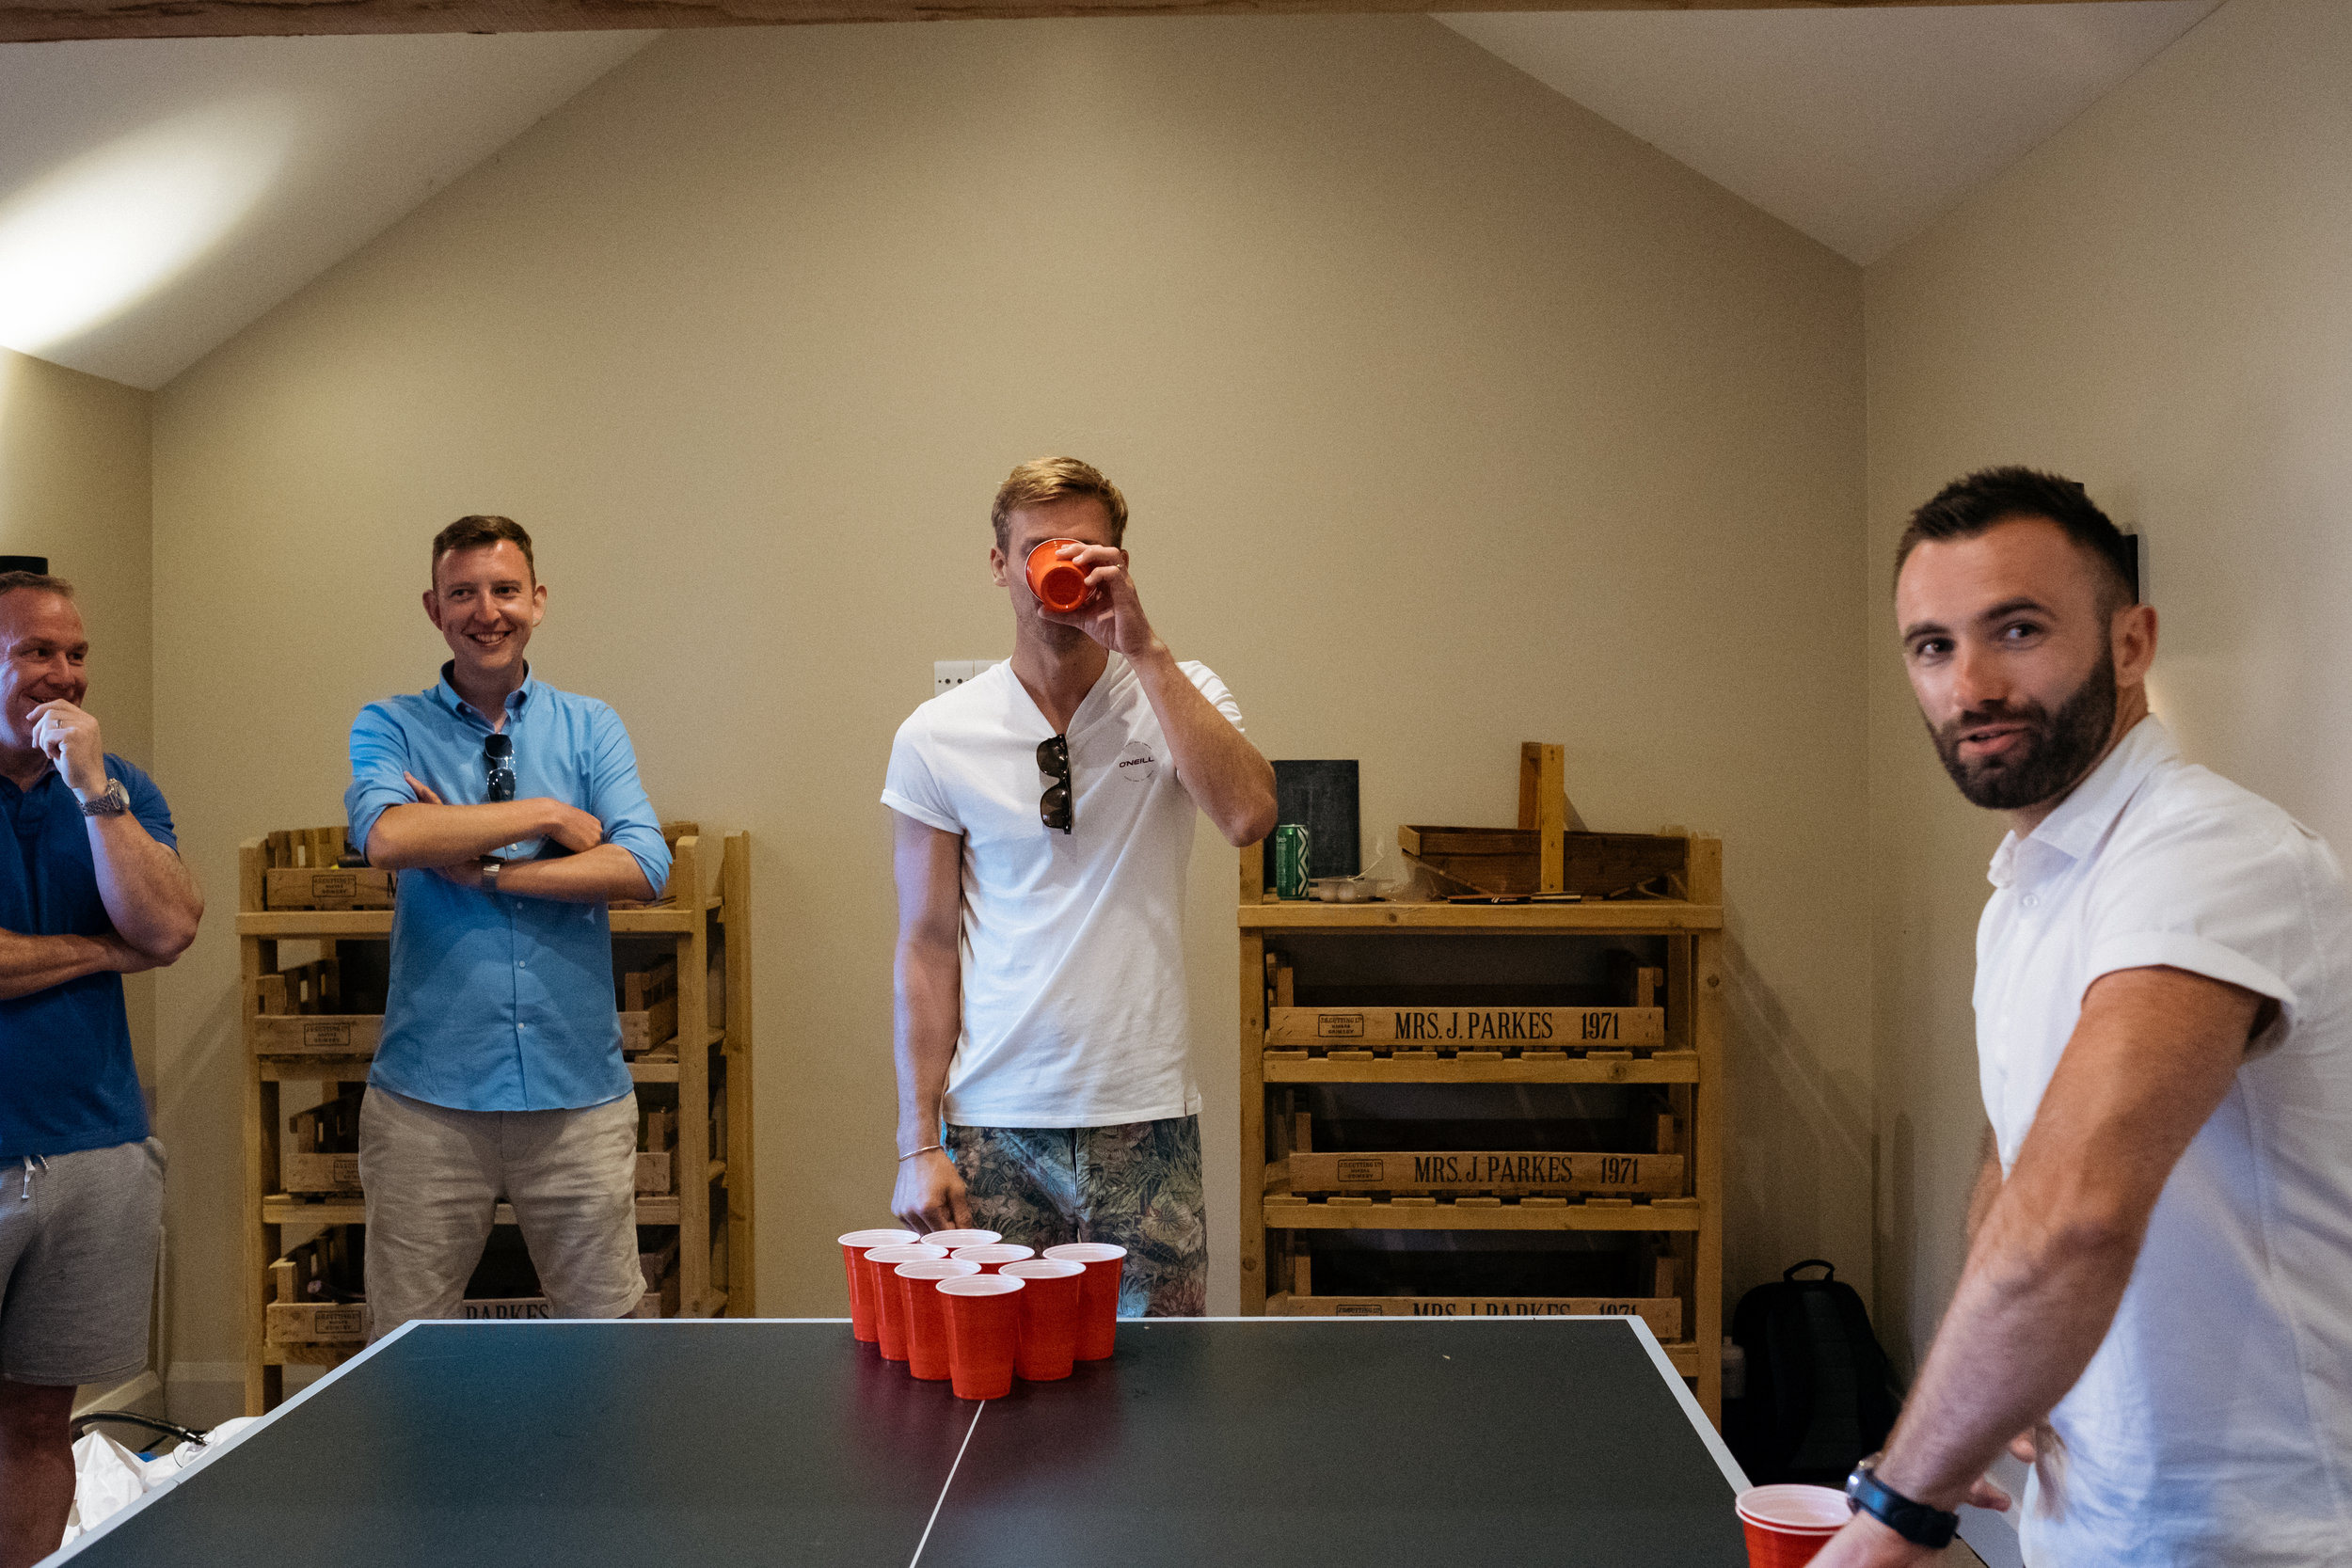 Groom drinks in beer pong at wedding